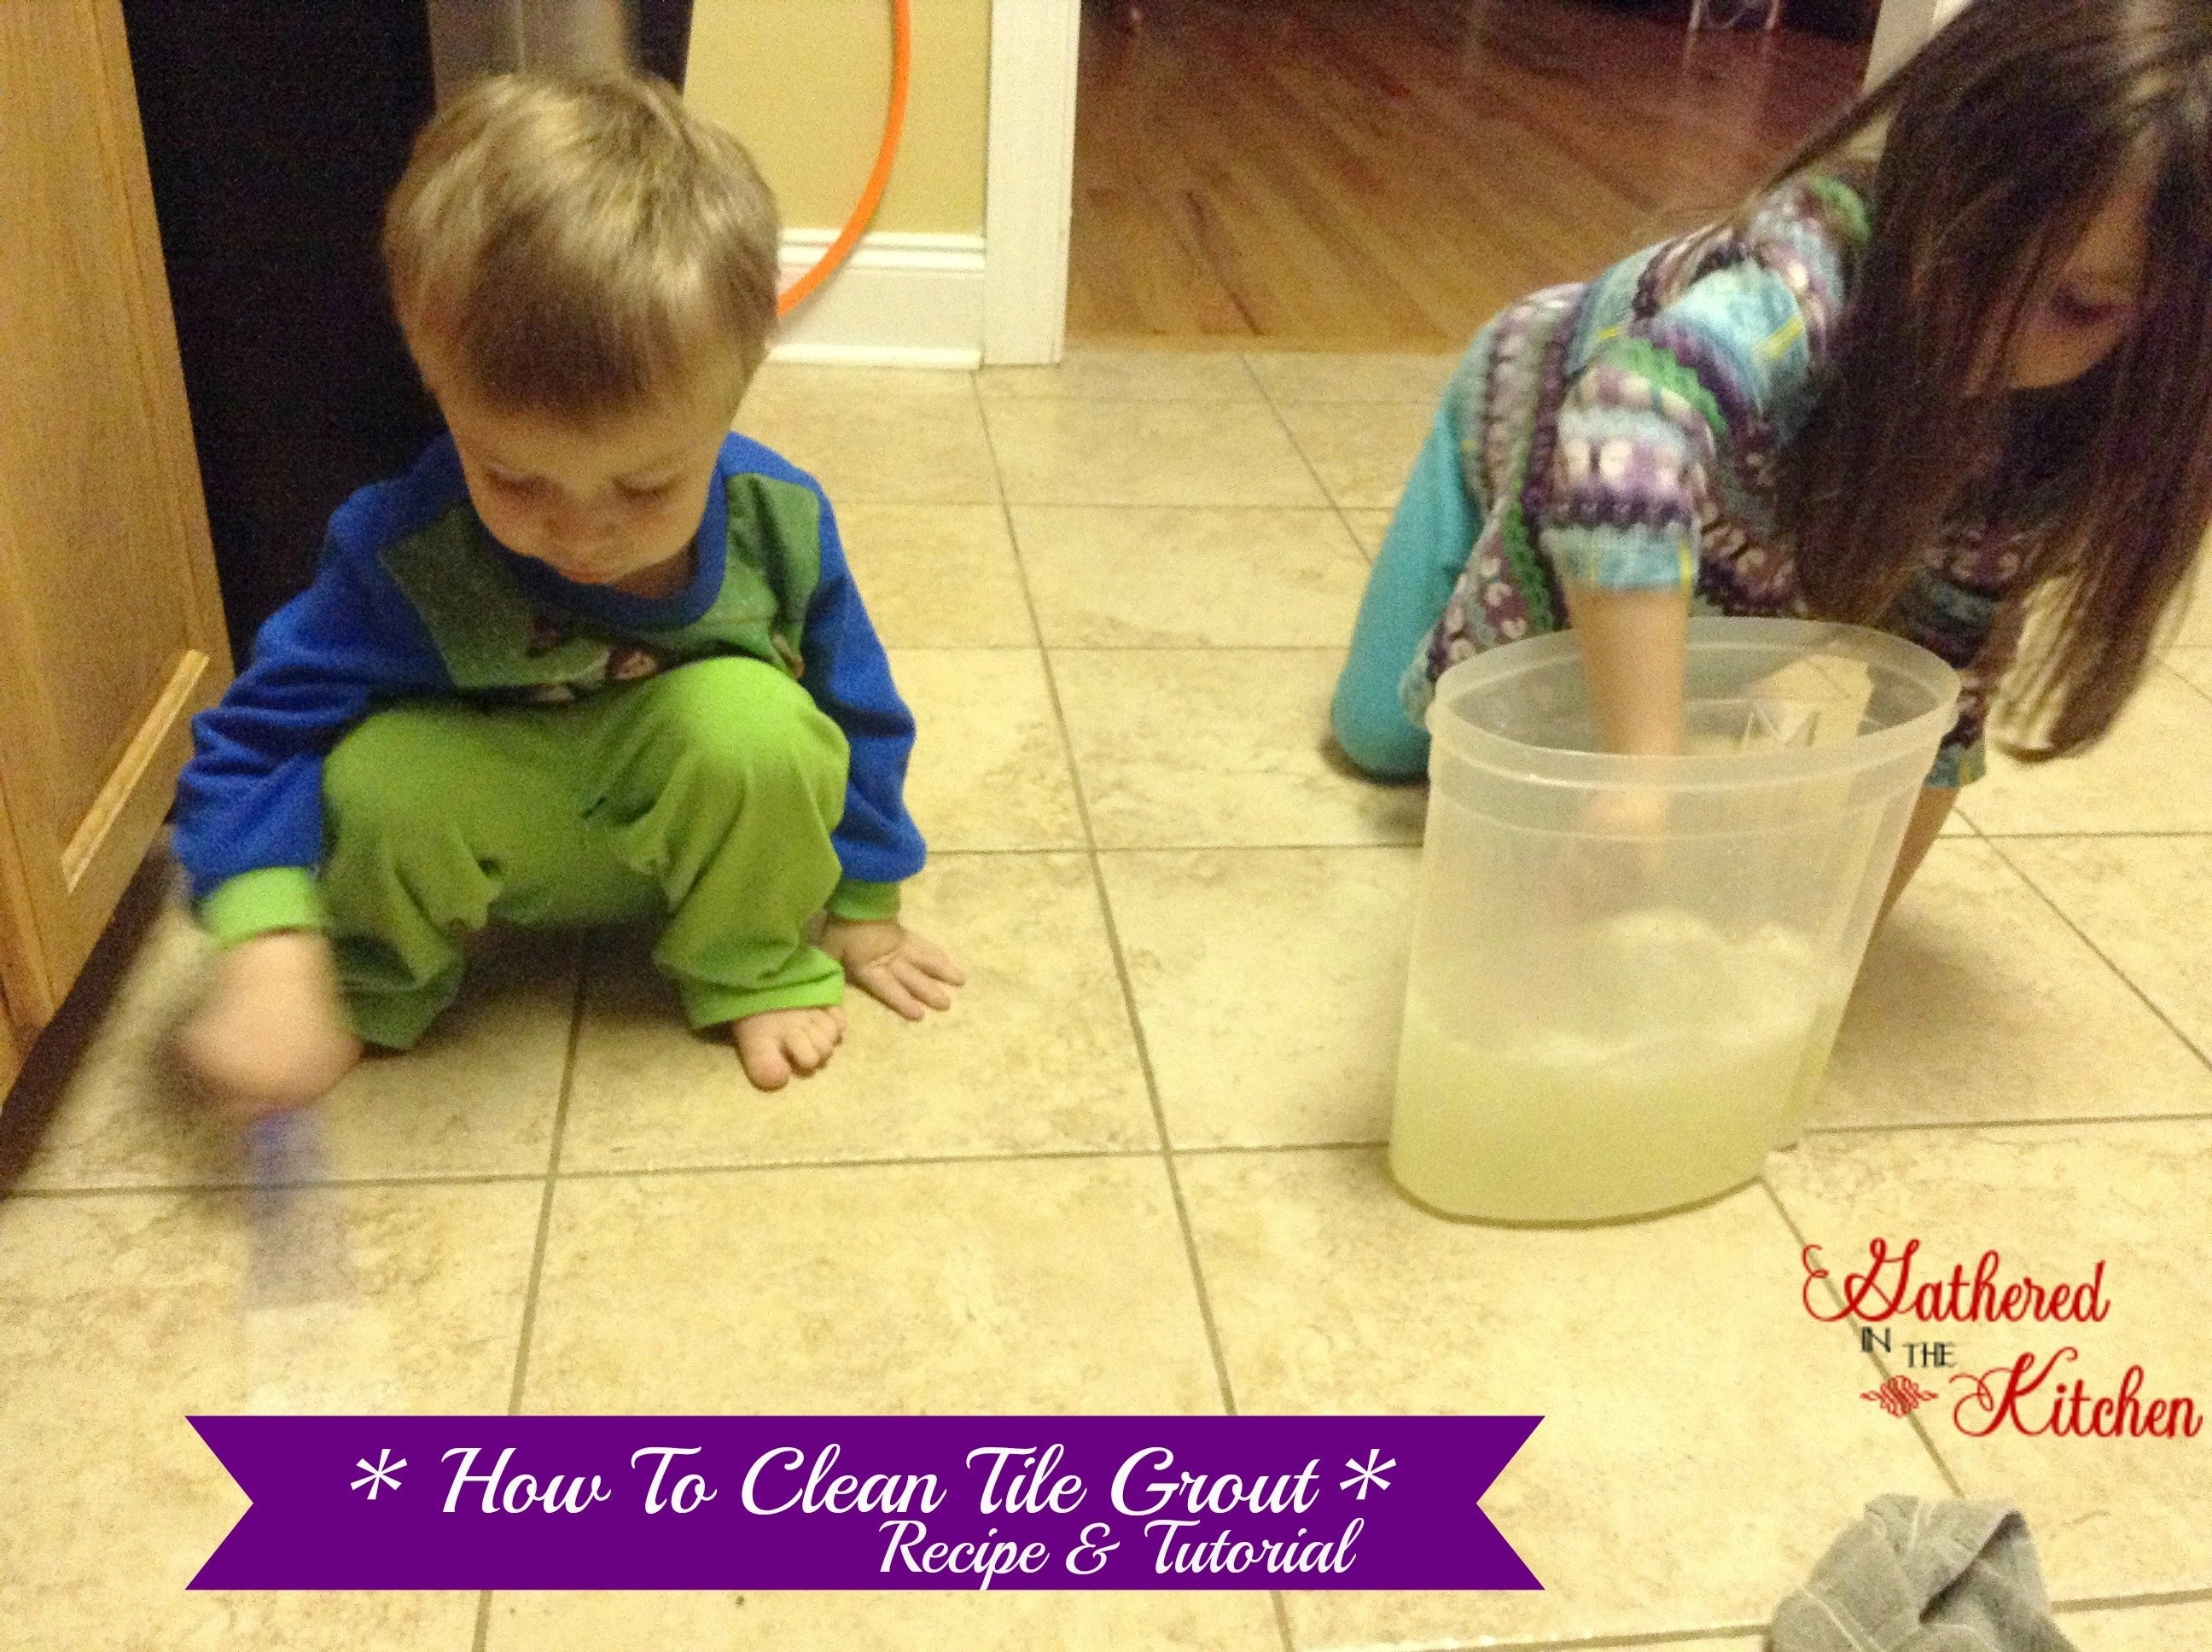 How To Clean Tile Grout + Homemade Cleaner Recipe